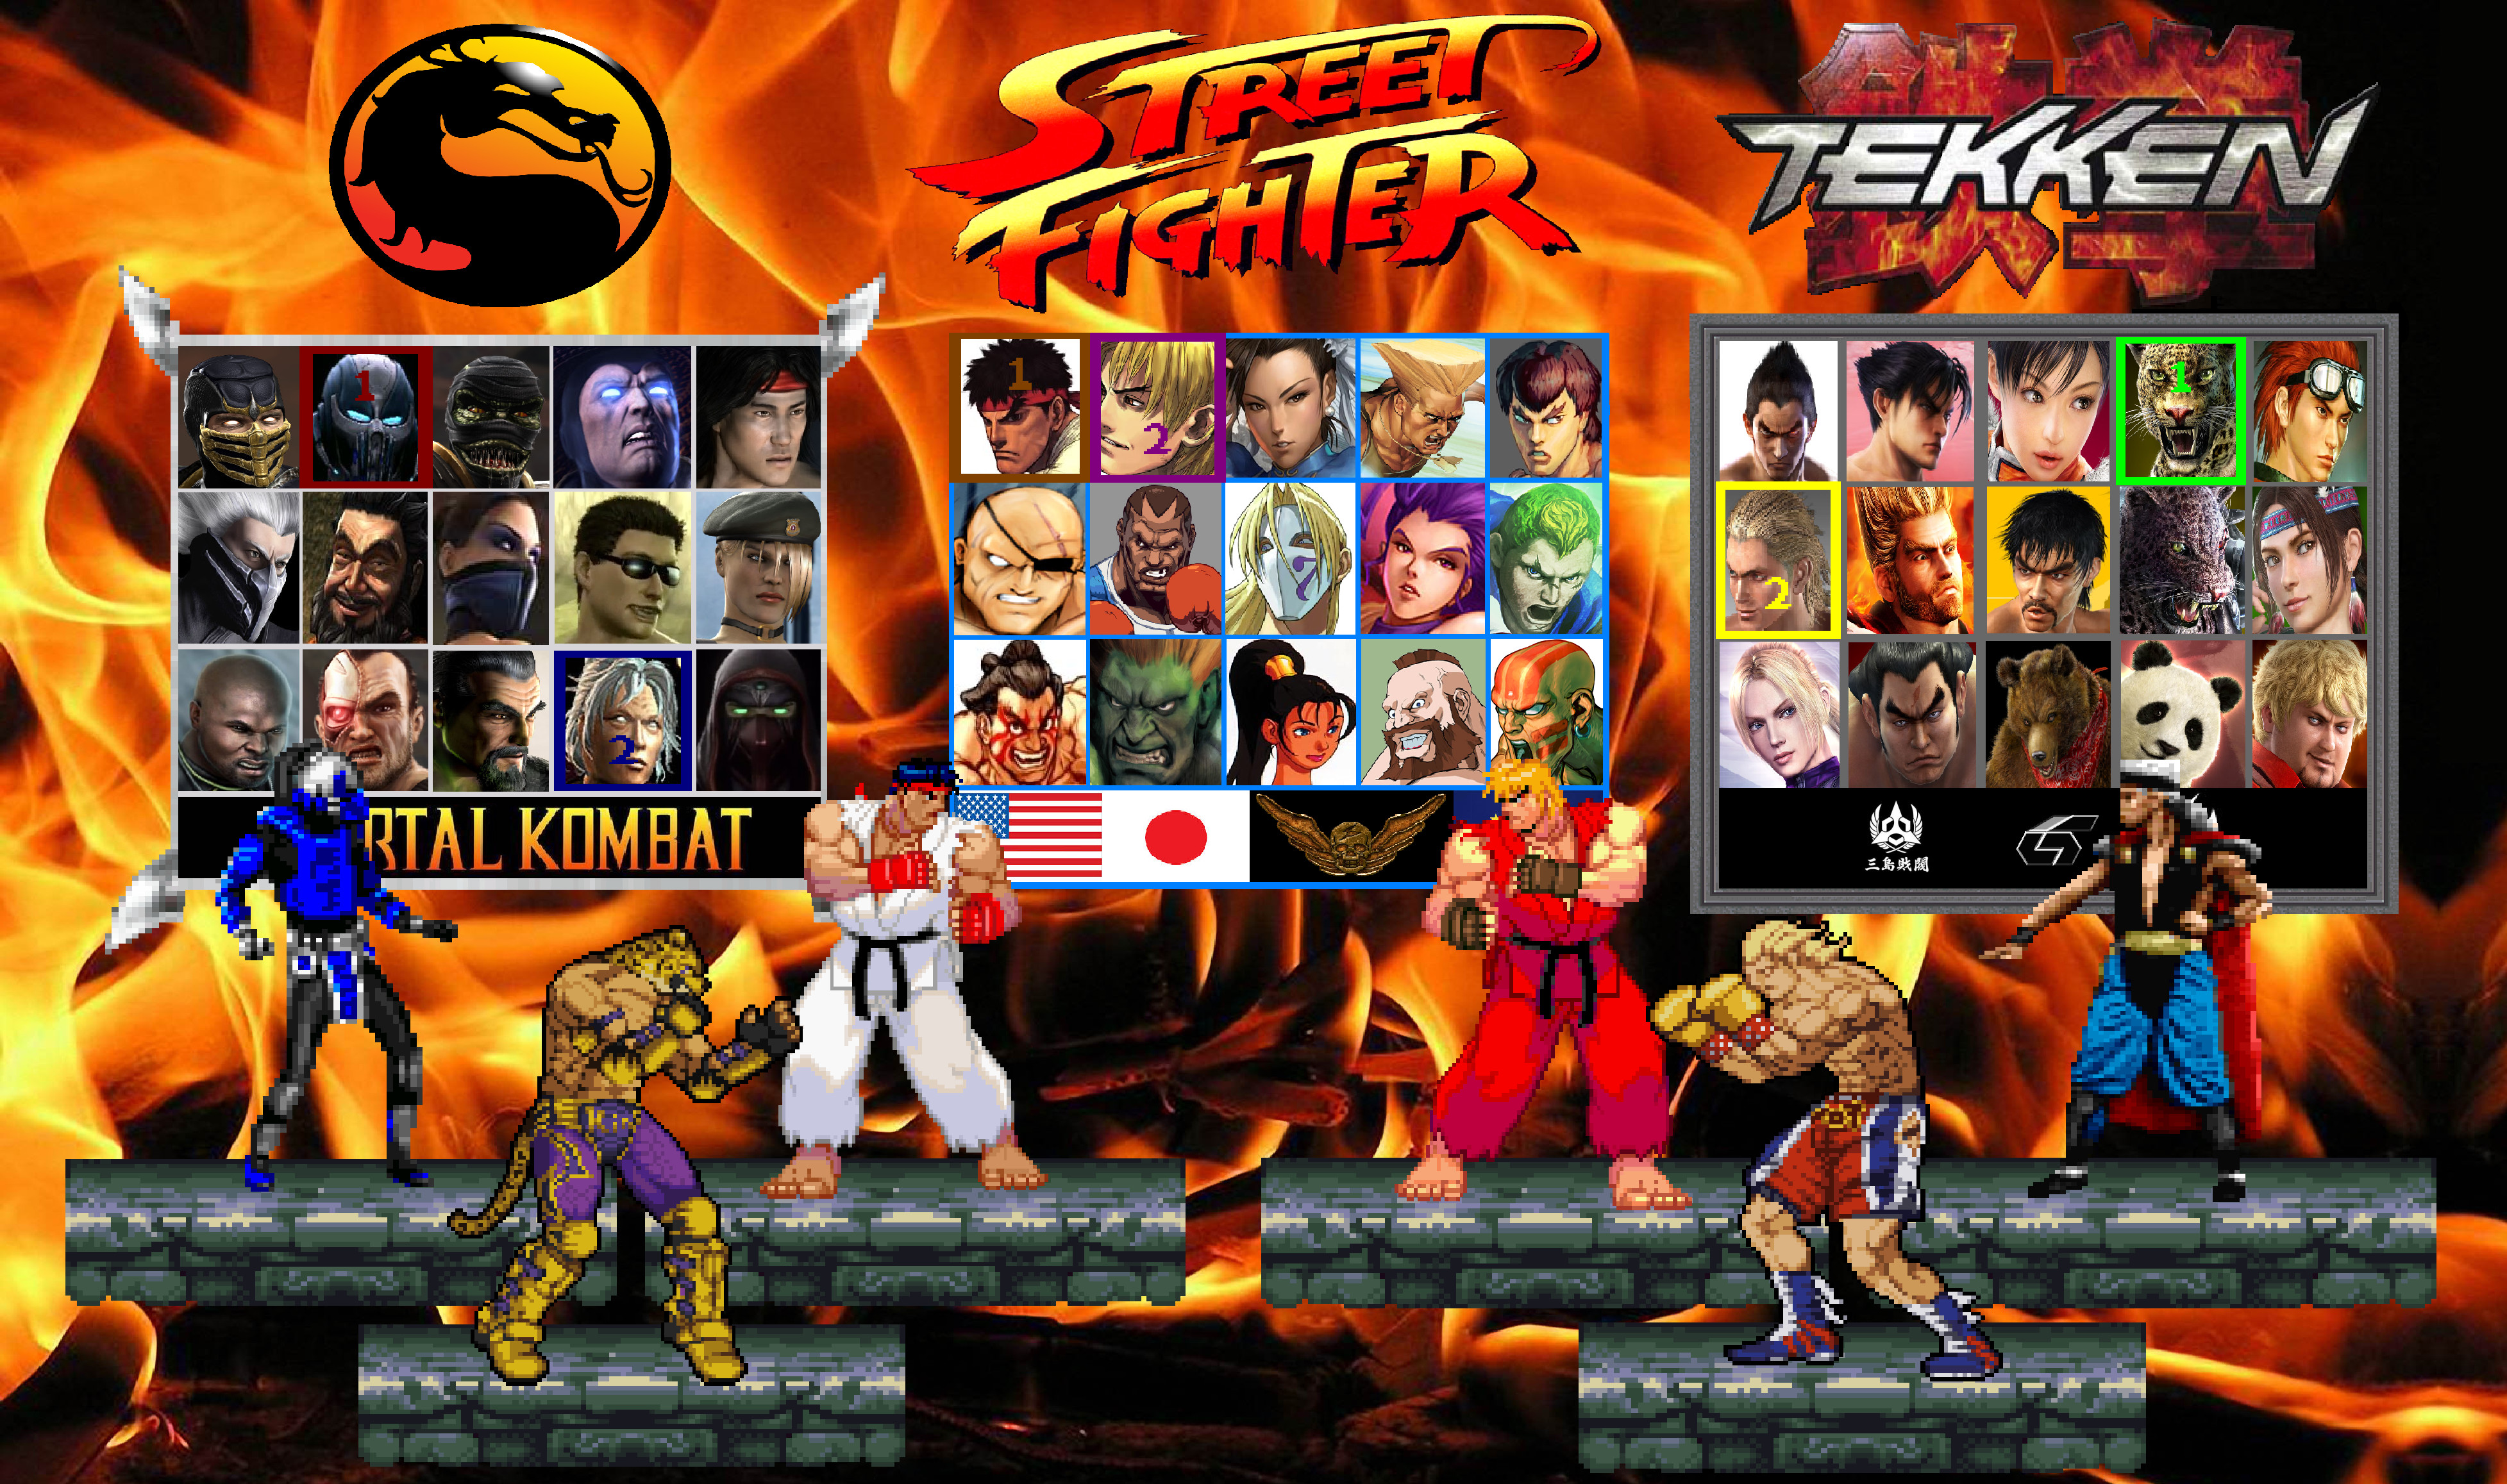 MK X SF X TK Character Select Screen by Gery850 on DeviantArt